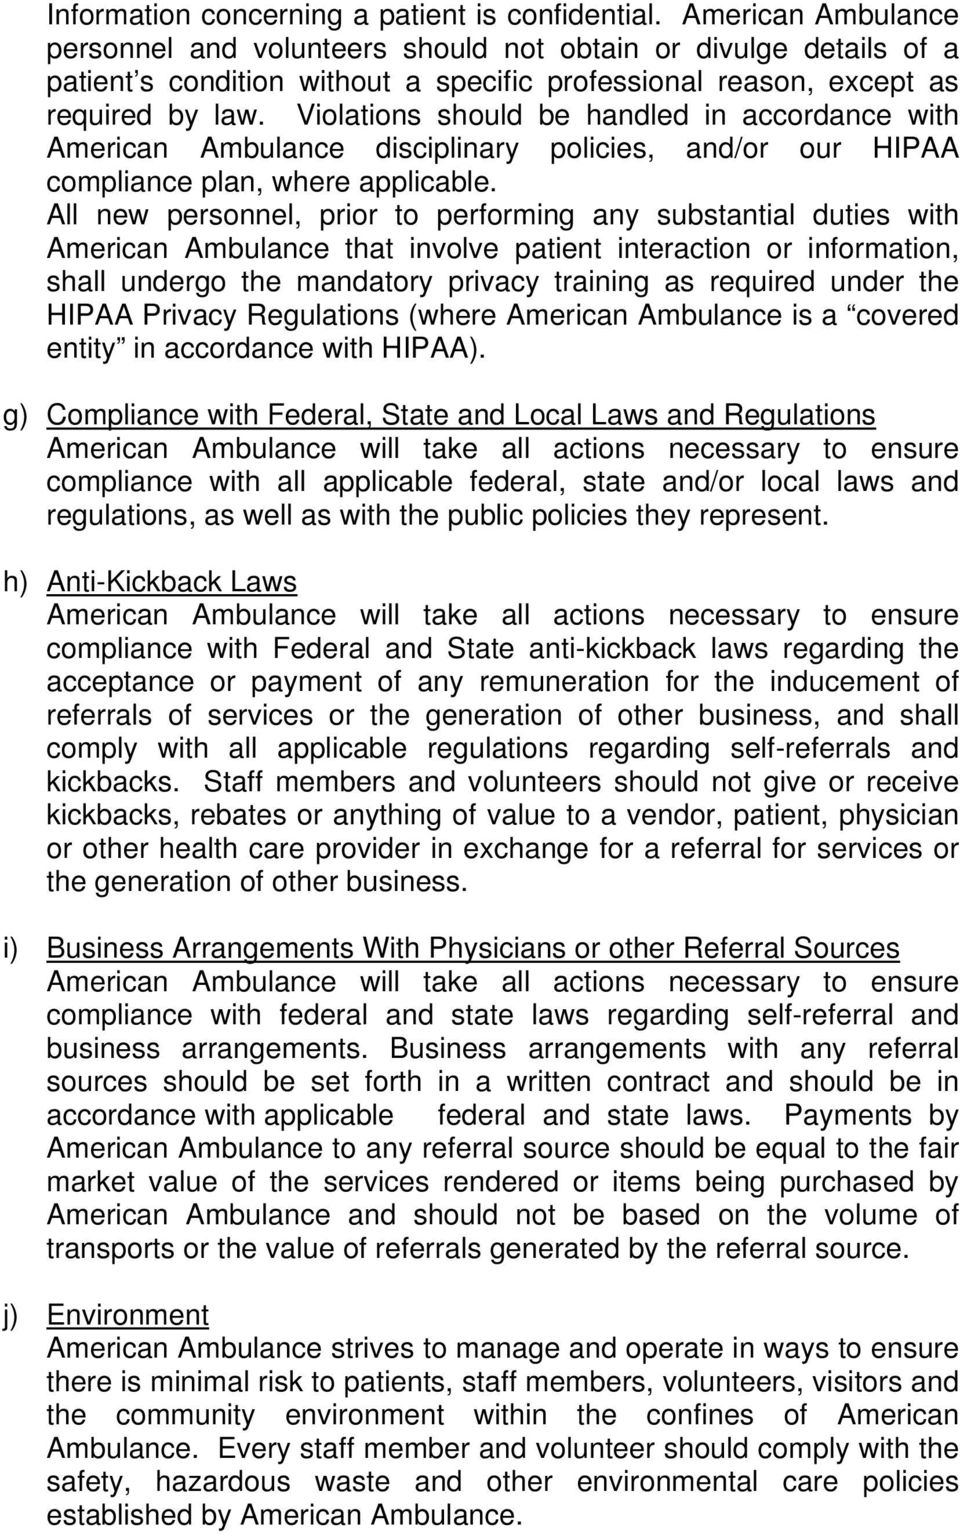 Violations should be handled in accordance with American Ambulance disciplinary policies, and/or our HIPAA compliance plan, where applicable.